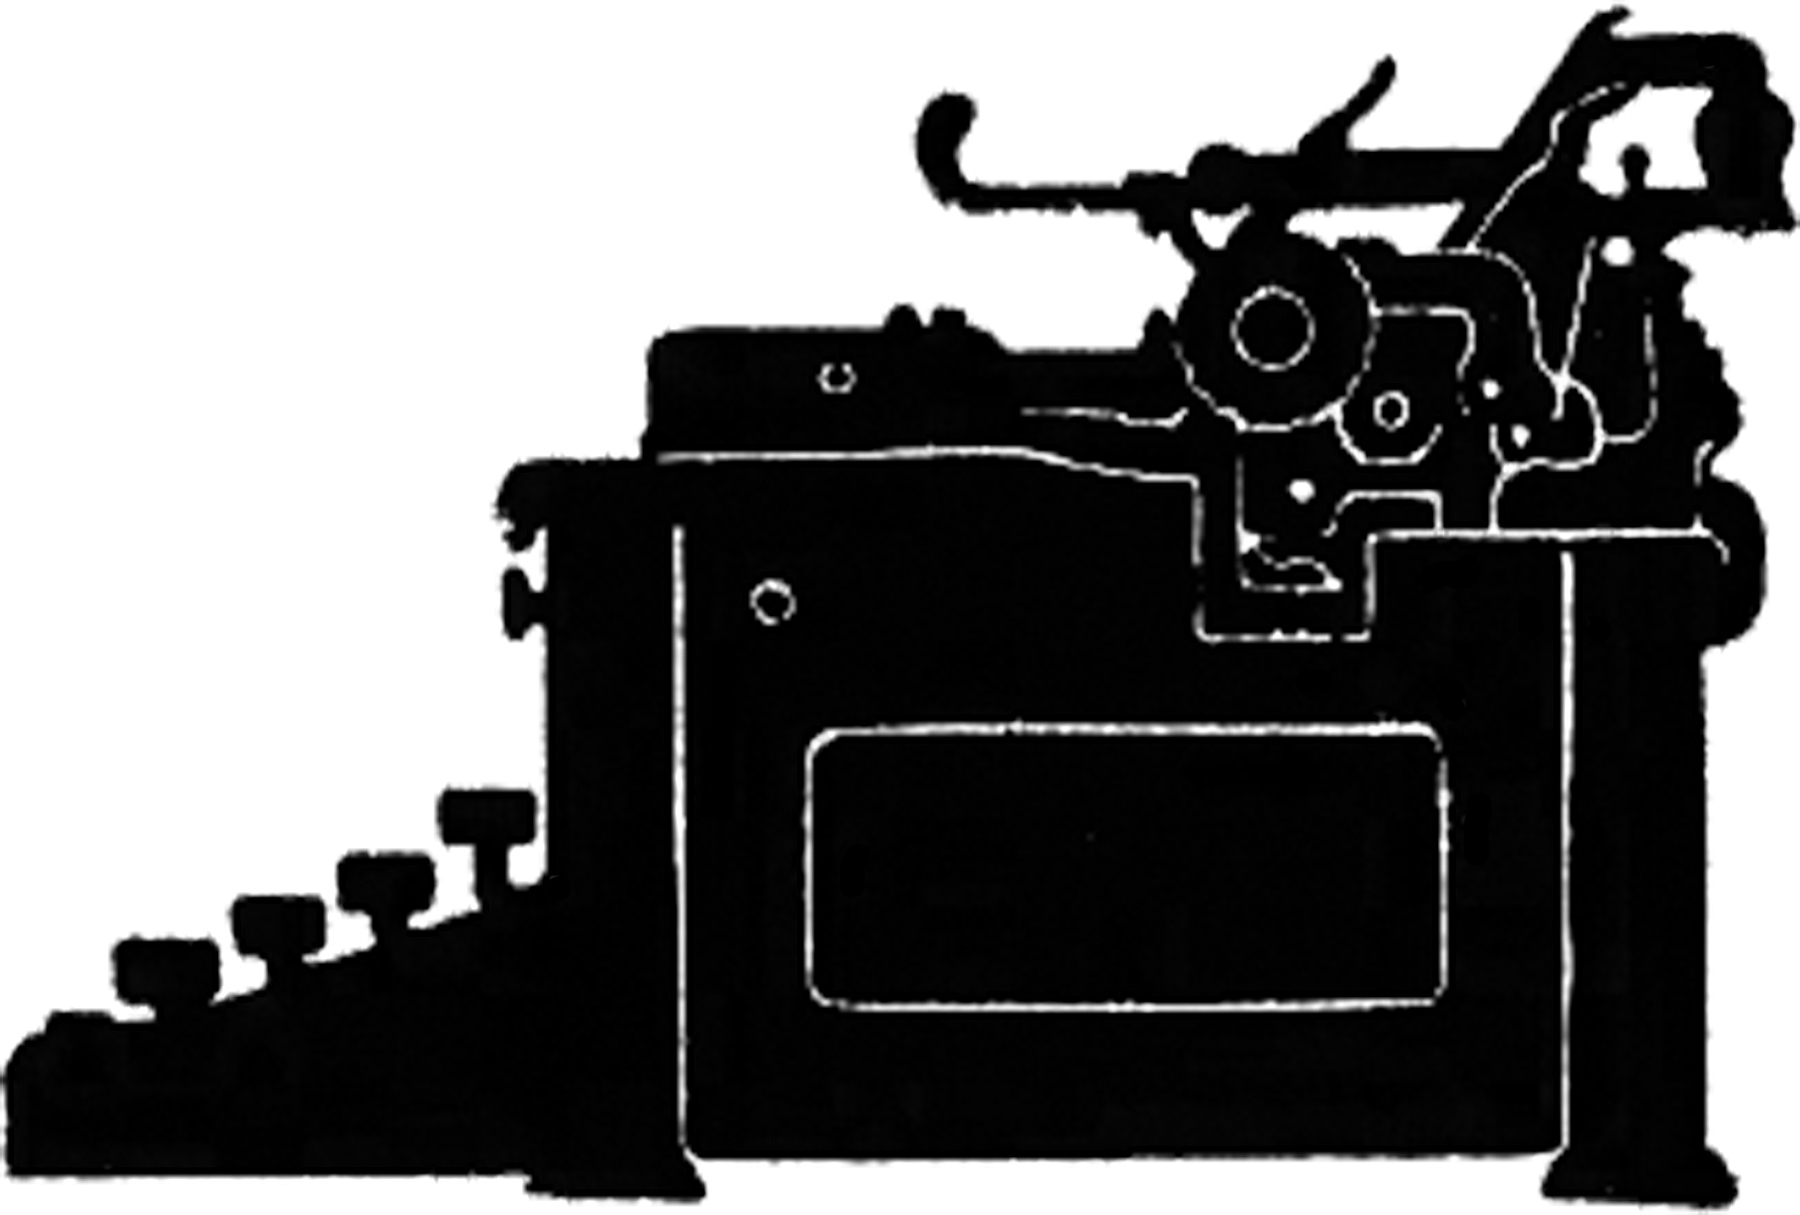 vintage typewriter silhouette image the graphics fairy rh thegraphicsfairy com vintage camera clip art free vintage camera clip art free